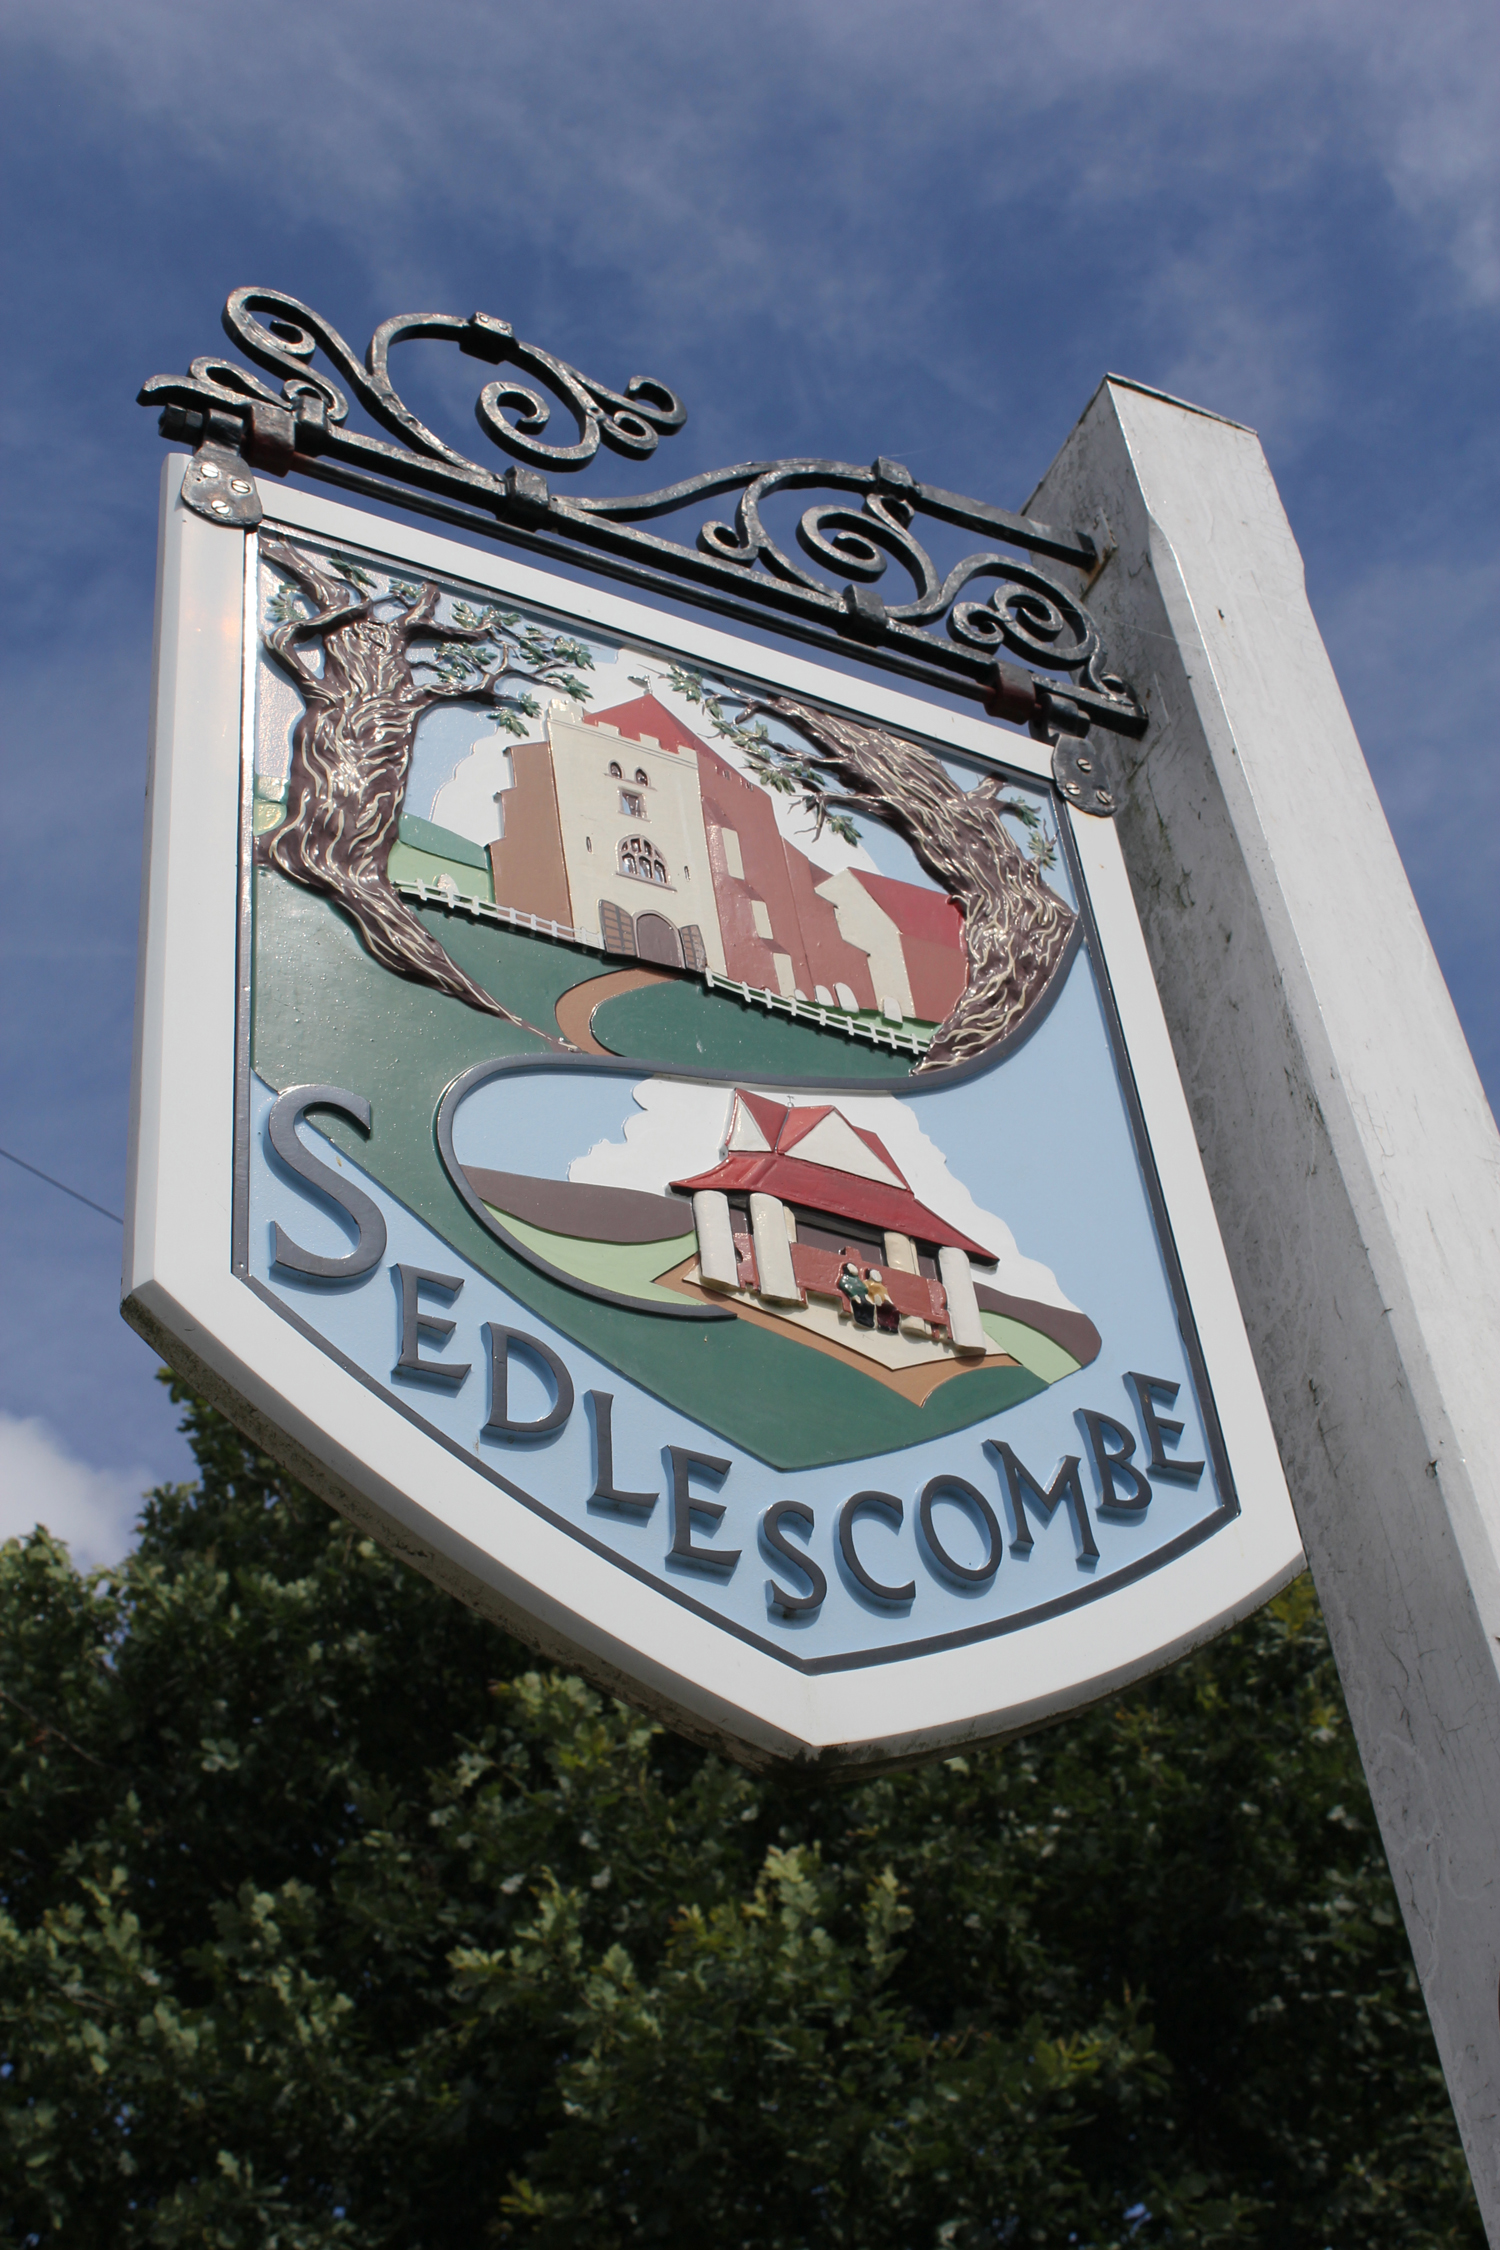 Sedlescombe village sign.jpg